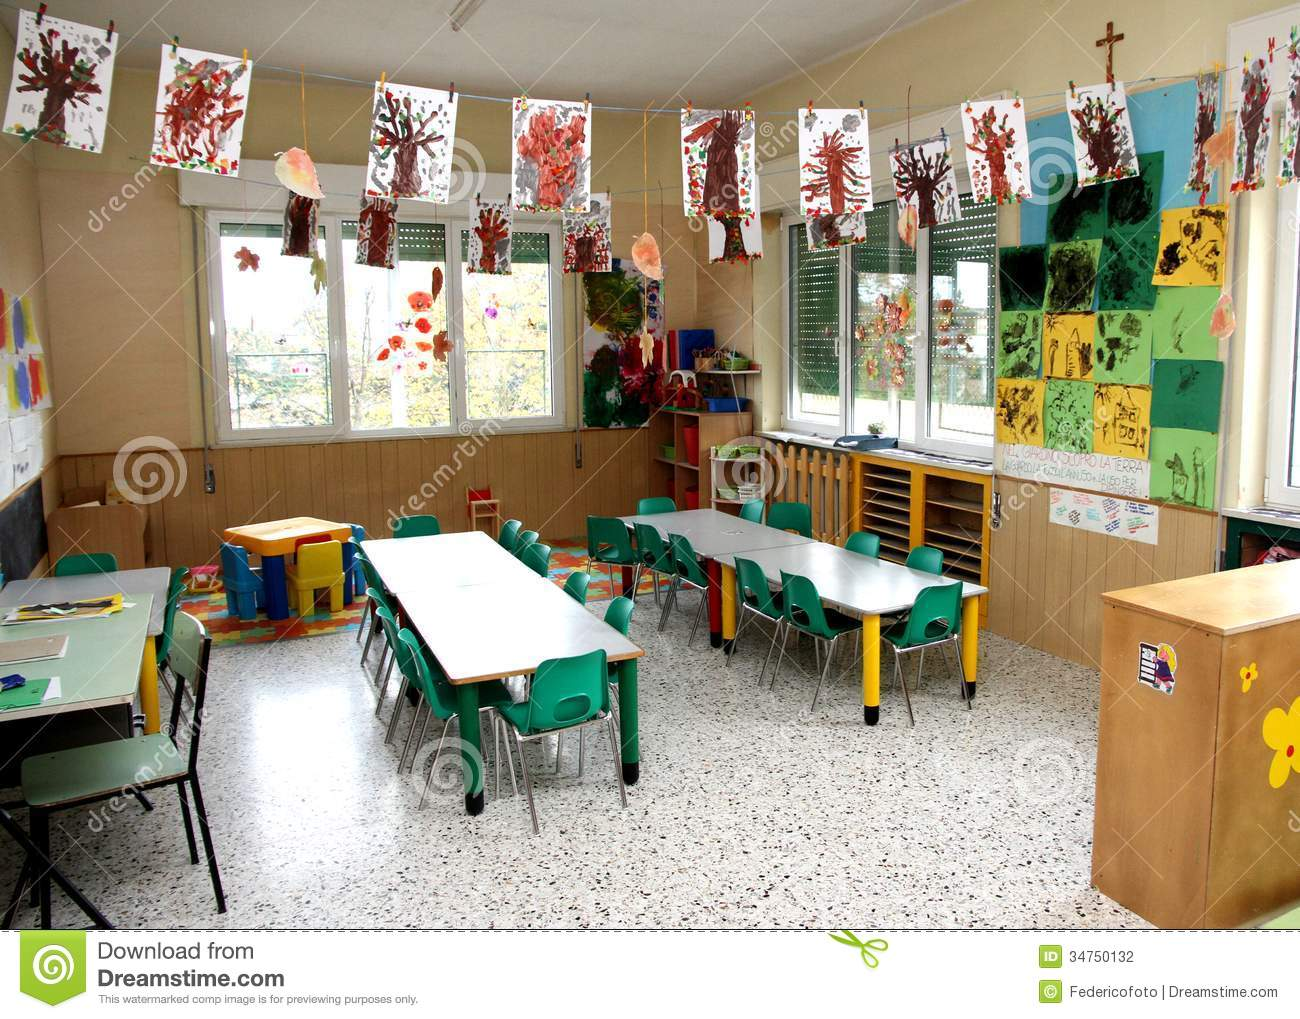 Nursery Class Of Children With Many Drawings Of Trees Hanging Fr Stock